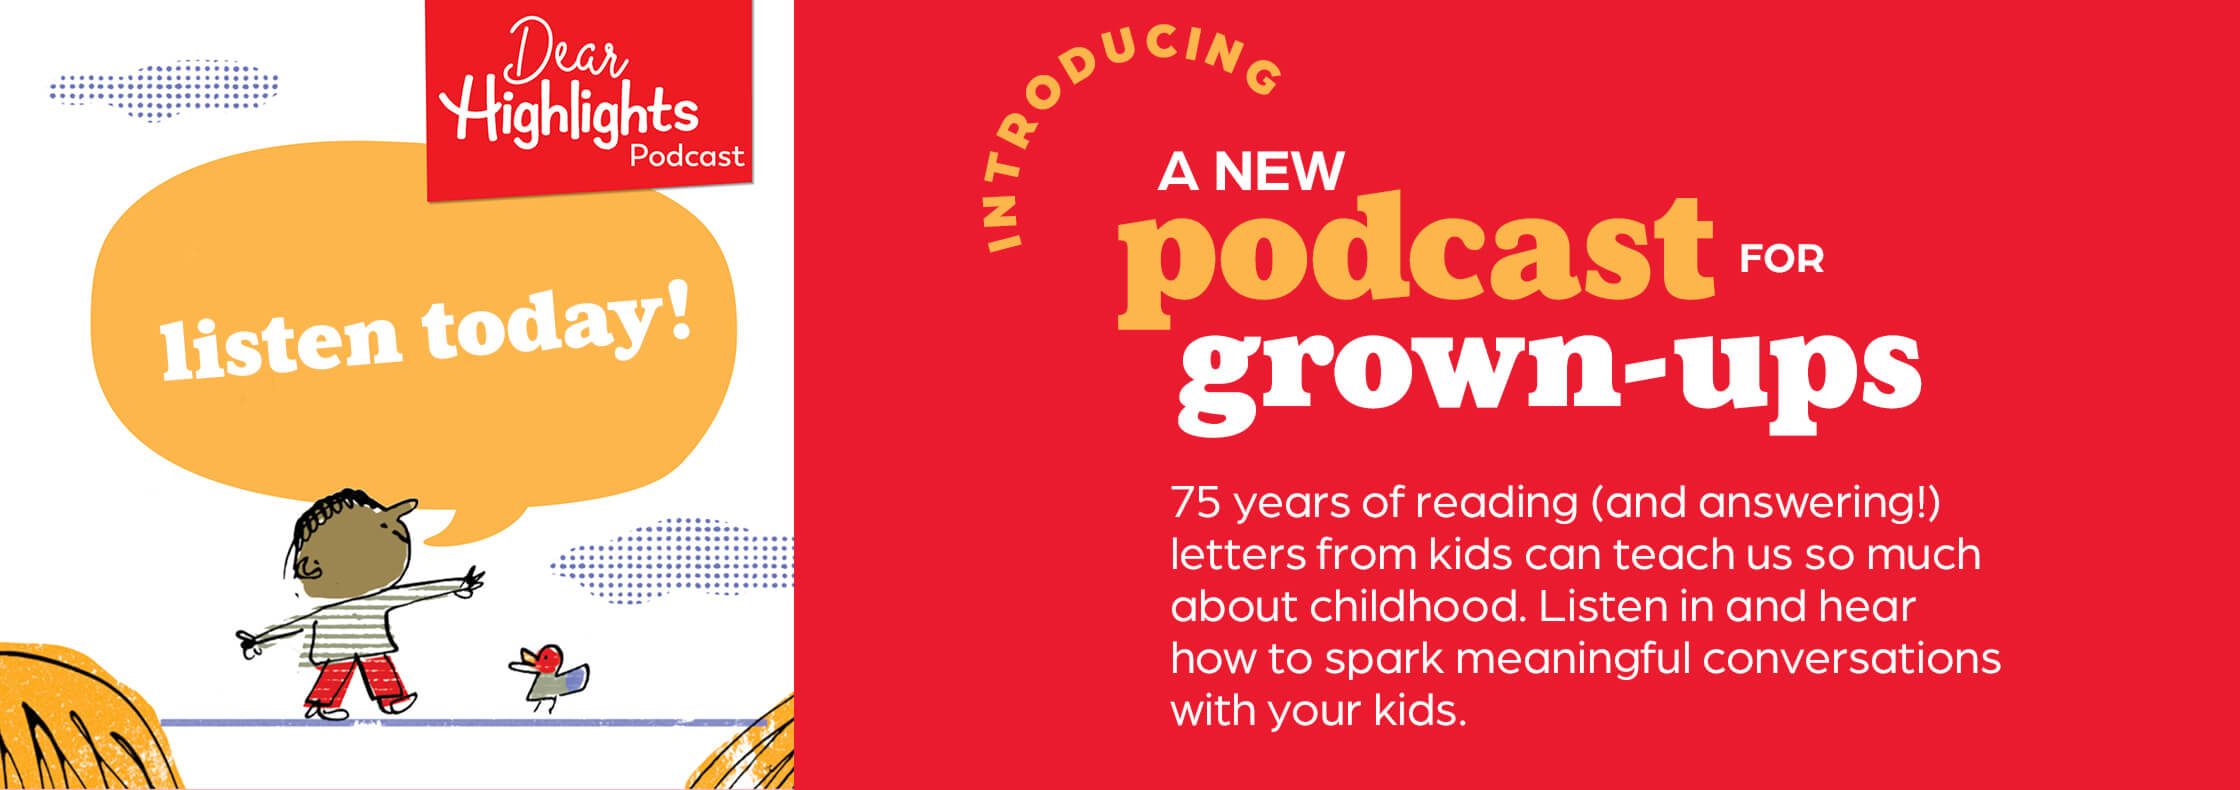 Discover what grown-ups can learn from kids as we explore the letters we've received (and answered!) for the past 75 years.